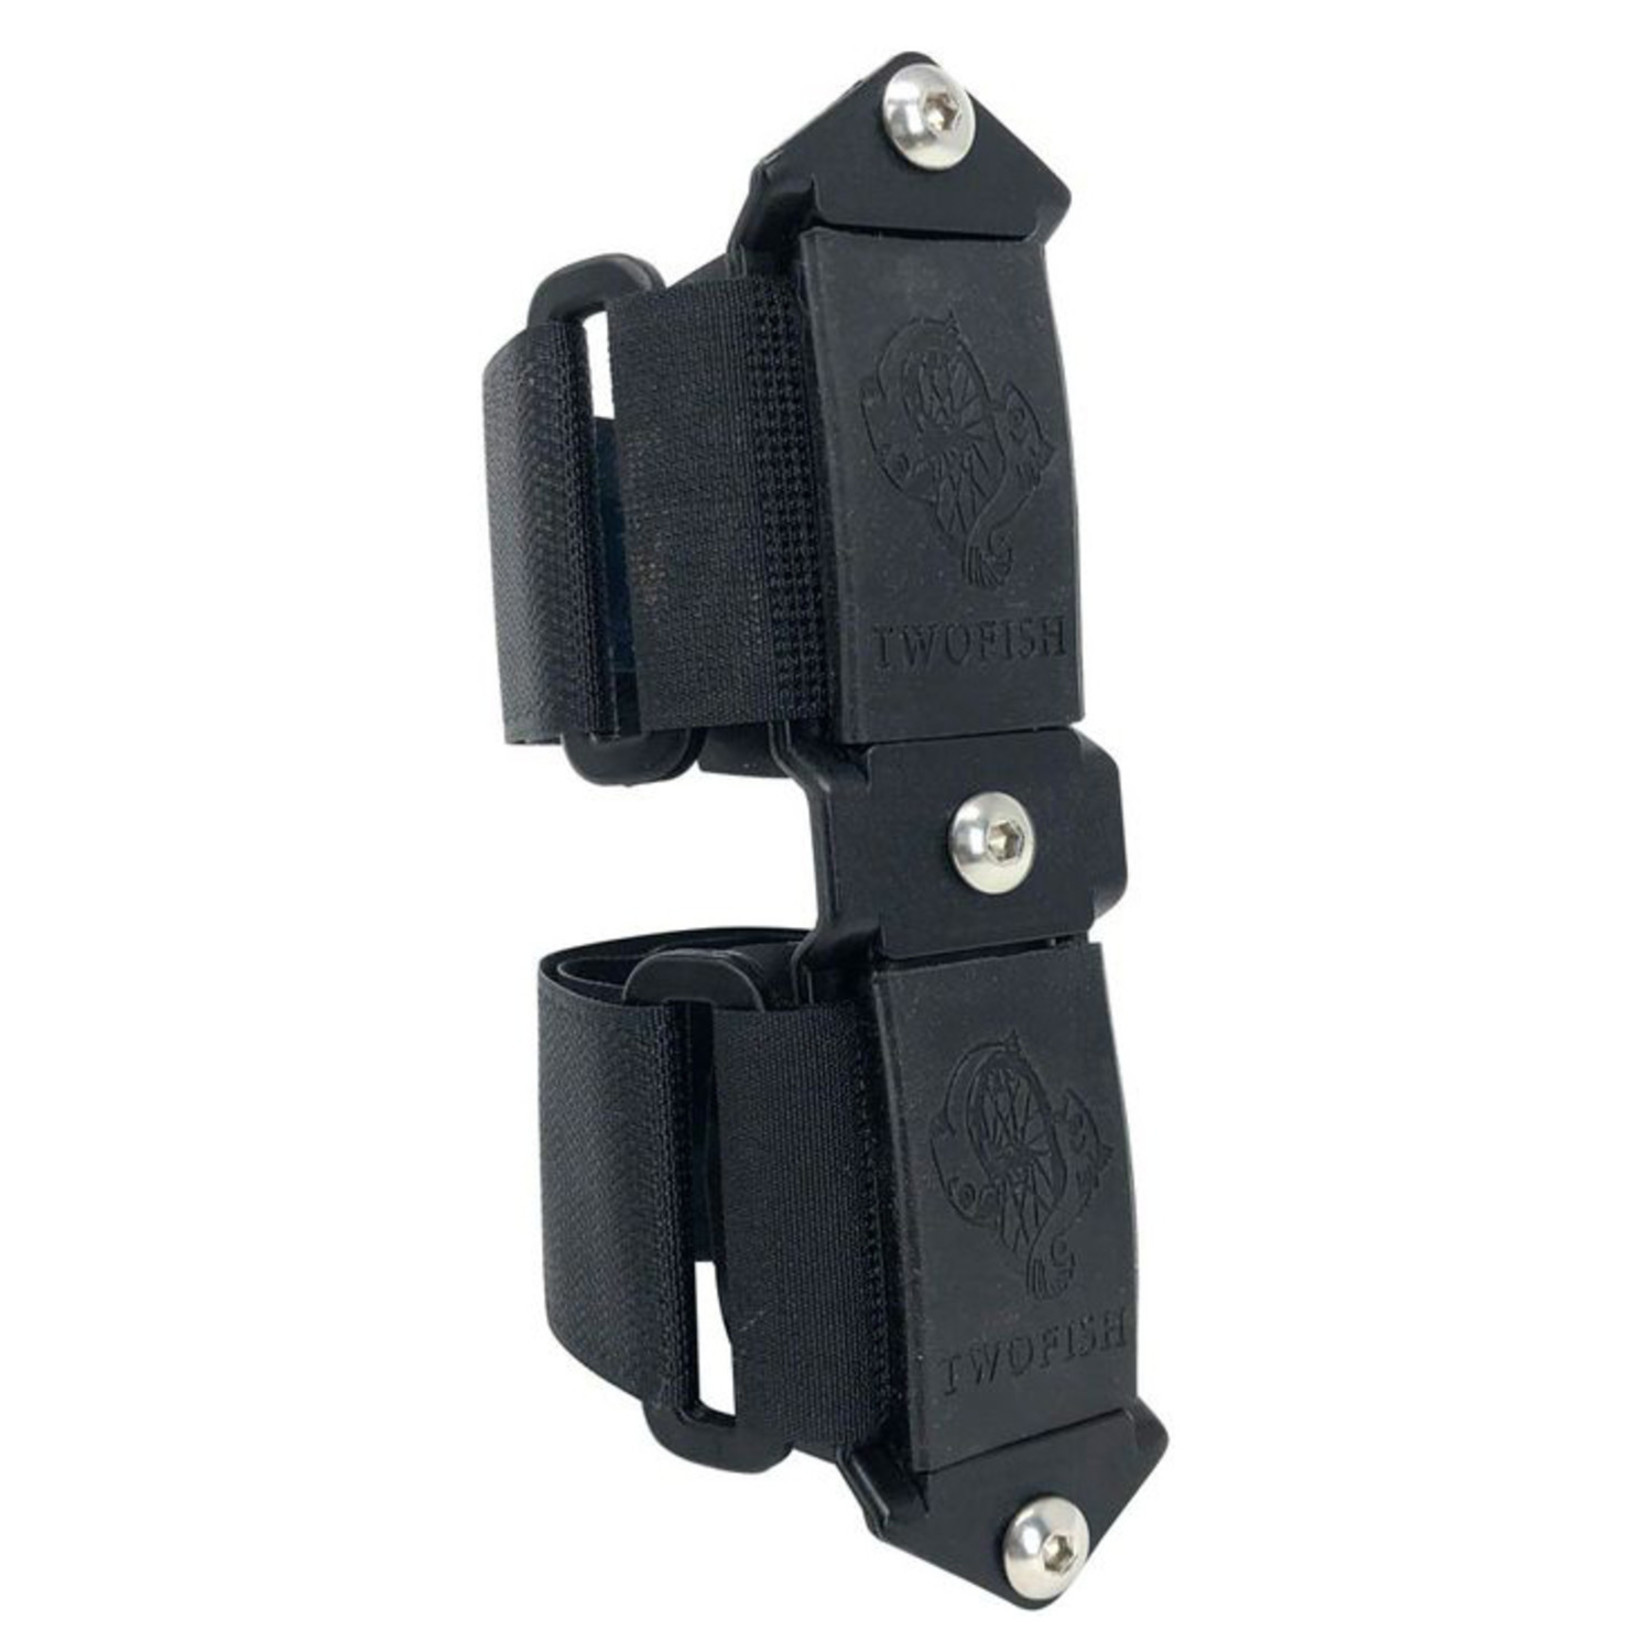 TwoFish TwoFish, Quick Cage 3 Bolt Adapter